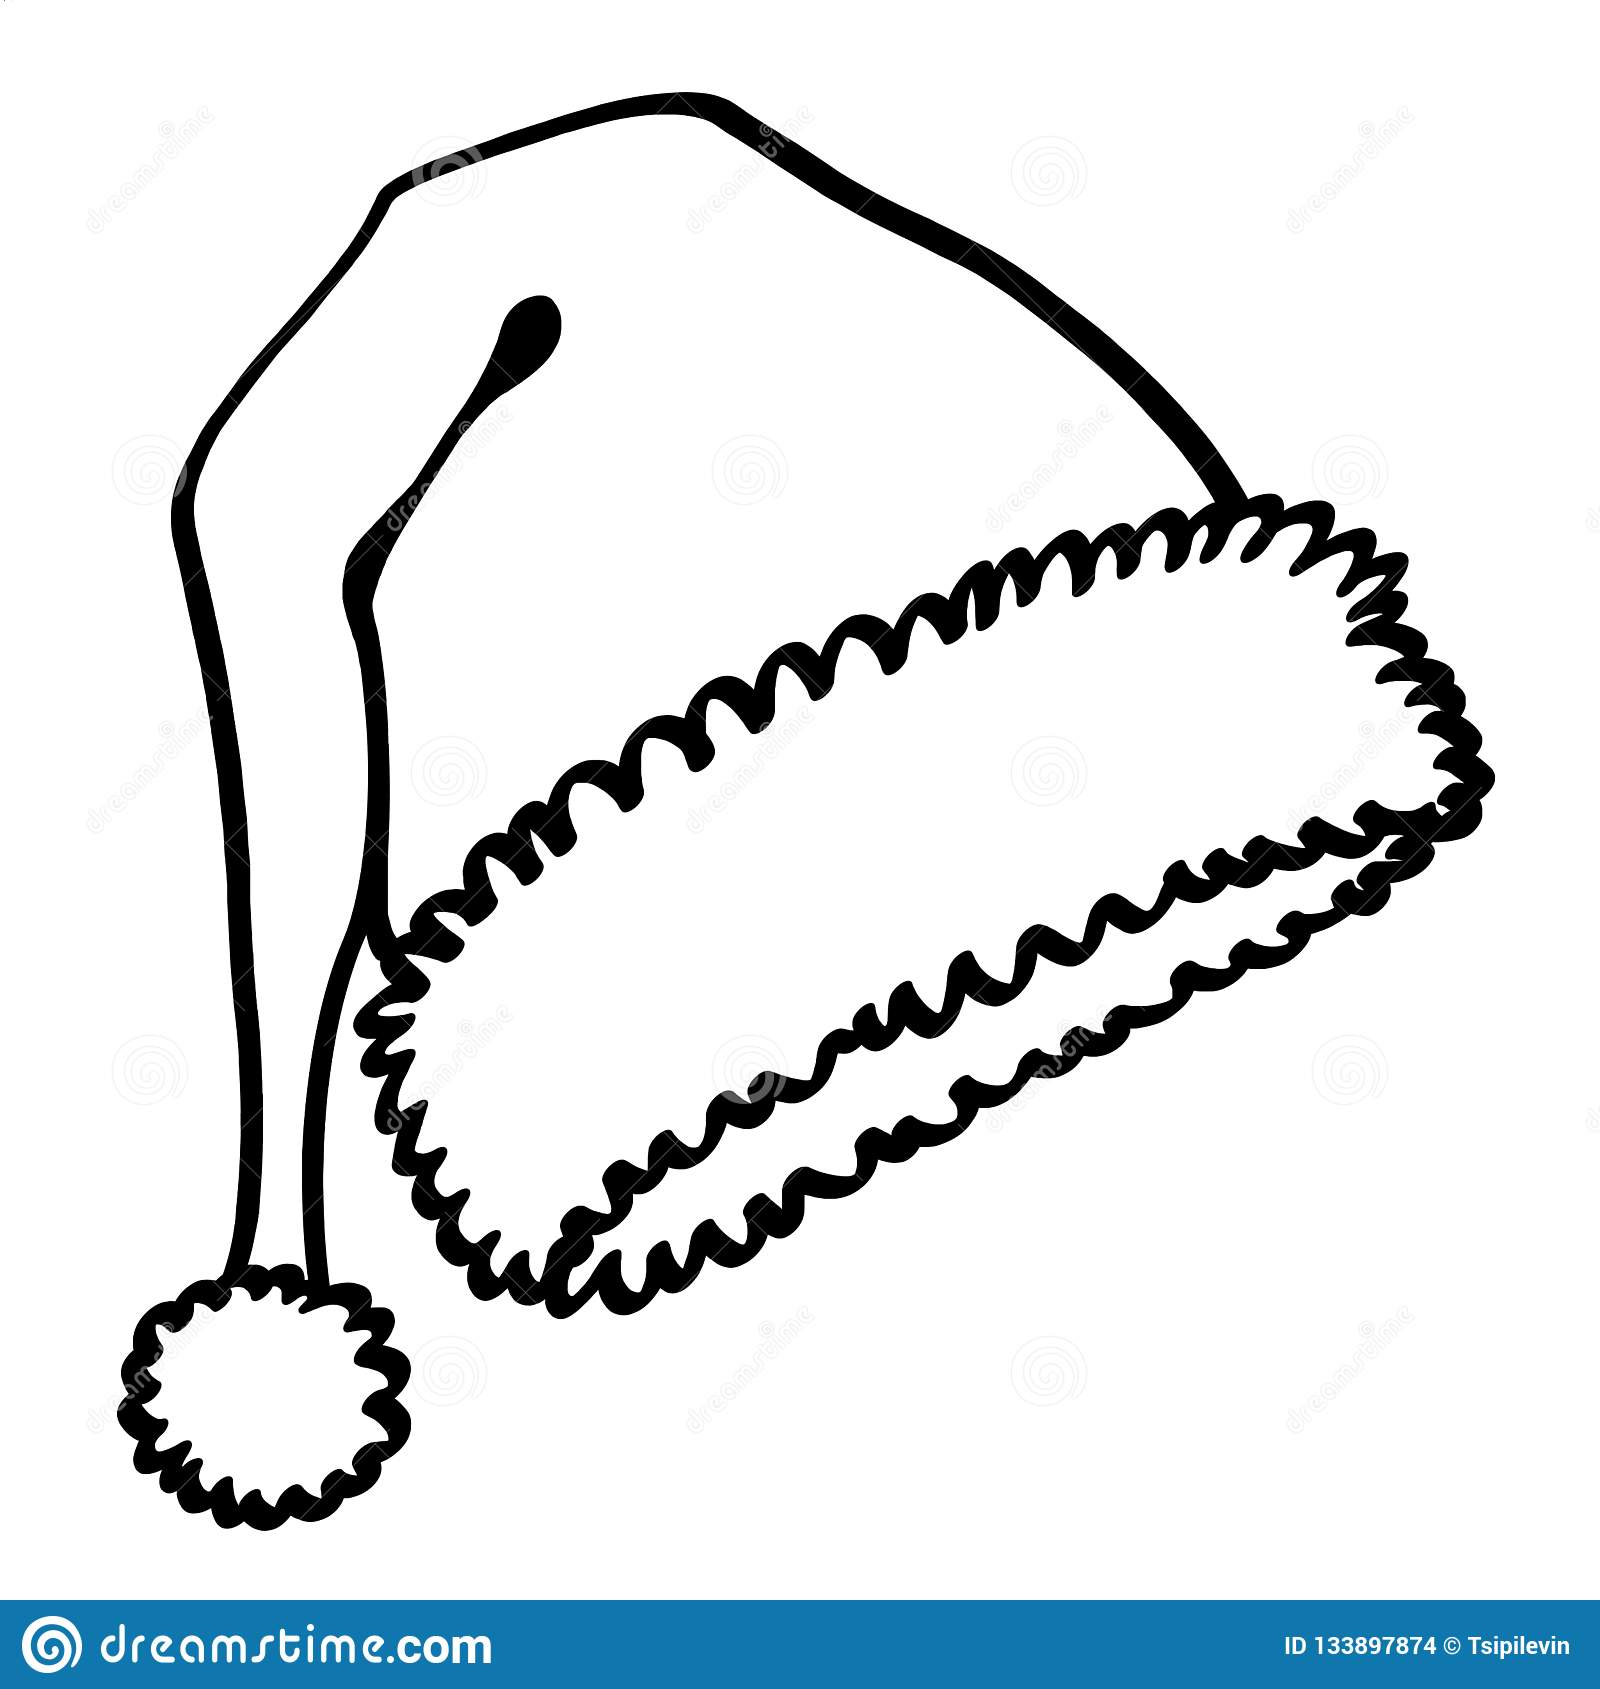 bef5c33a9bda3 Santa Claus hat outline illustration on white background  Christmas santa  hat black and white drawing